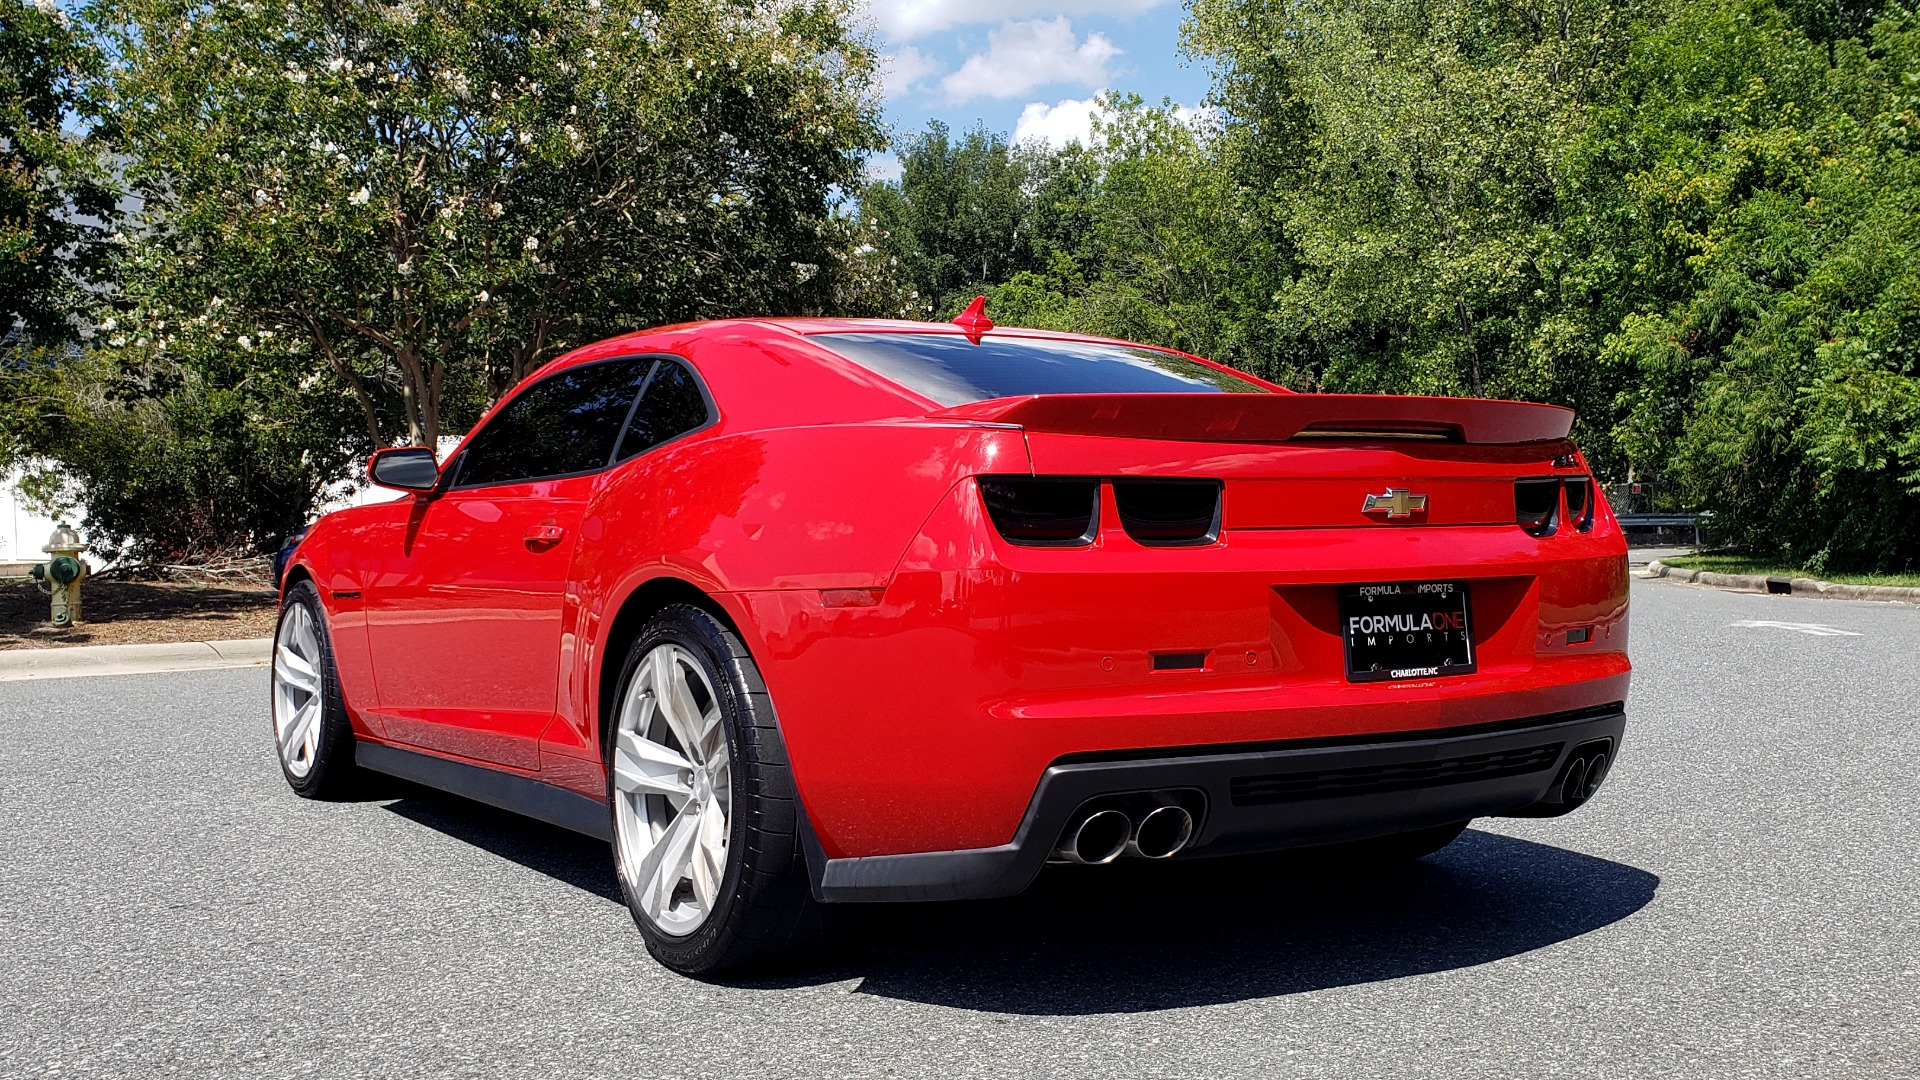 Used 2013 Chevrolet CAMARO ZL1 580HP / AUTO / NAV / BOSTON ACOUSTIC SND / REARVIEW for sale $40,995 at Formula Imports in Charlotte NC 28227 4